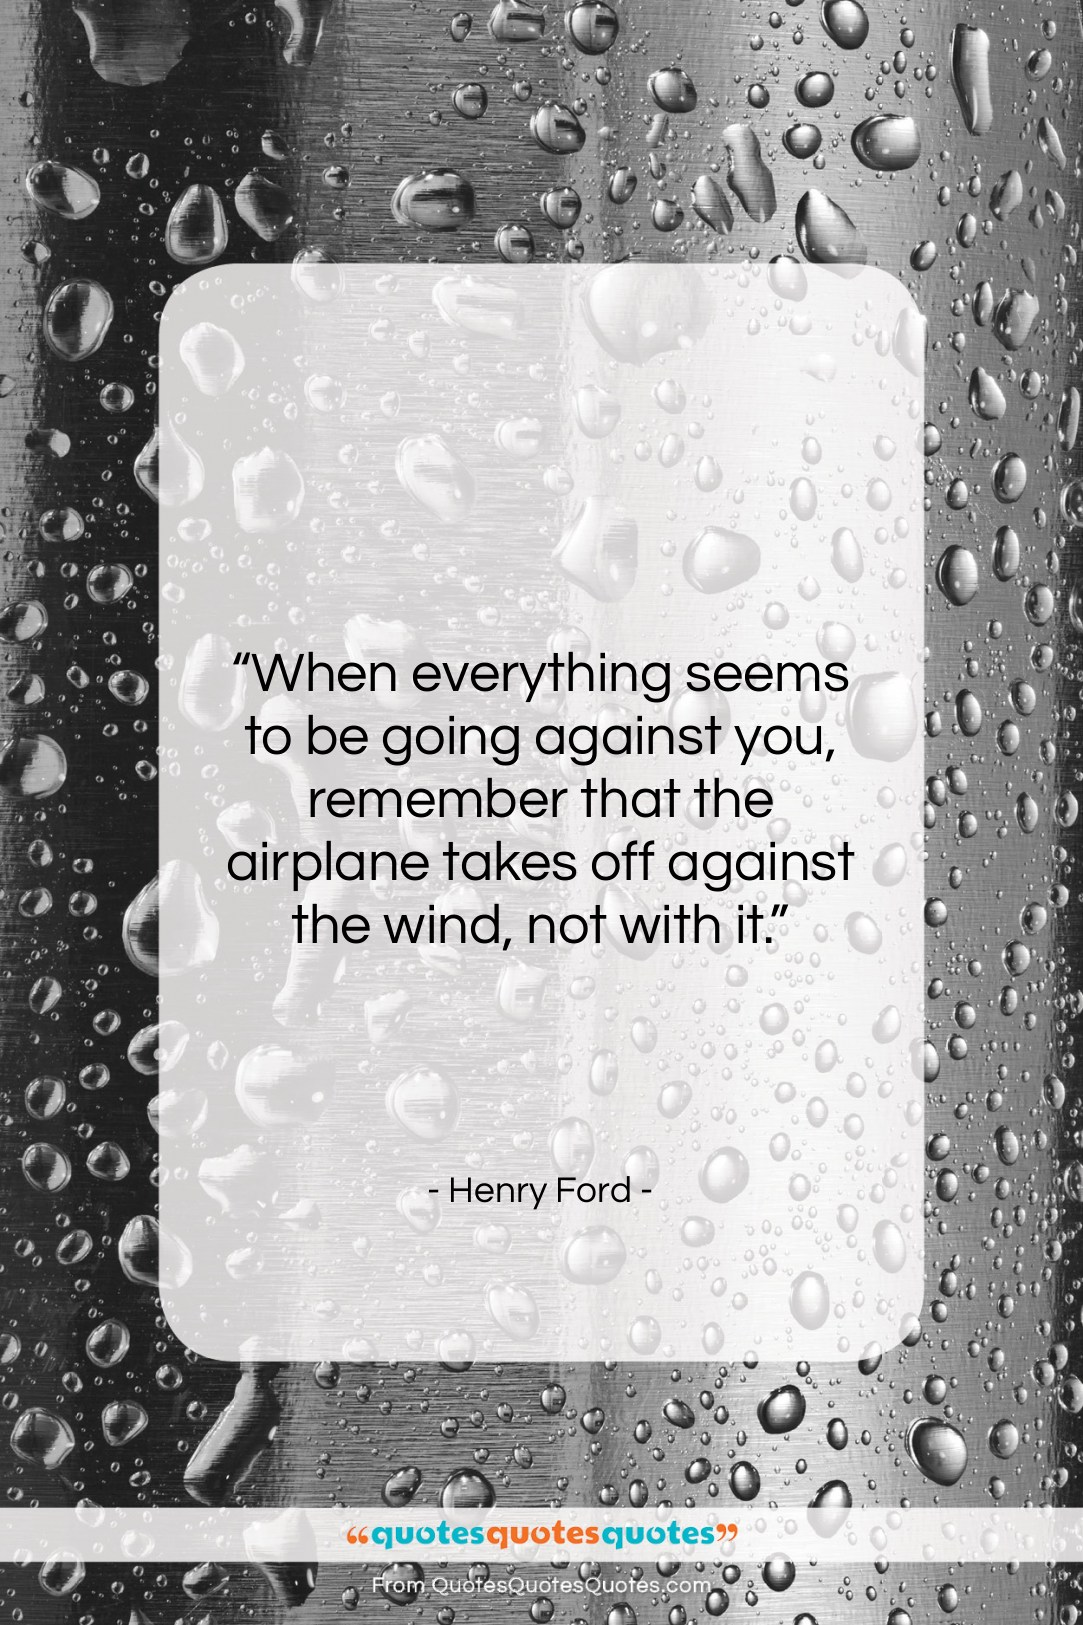 Get The Whole Henry Ford Quote When Everything Seems To Be Going